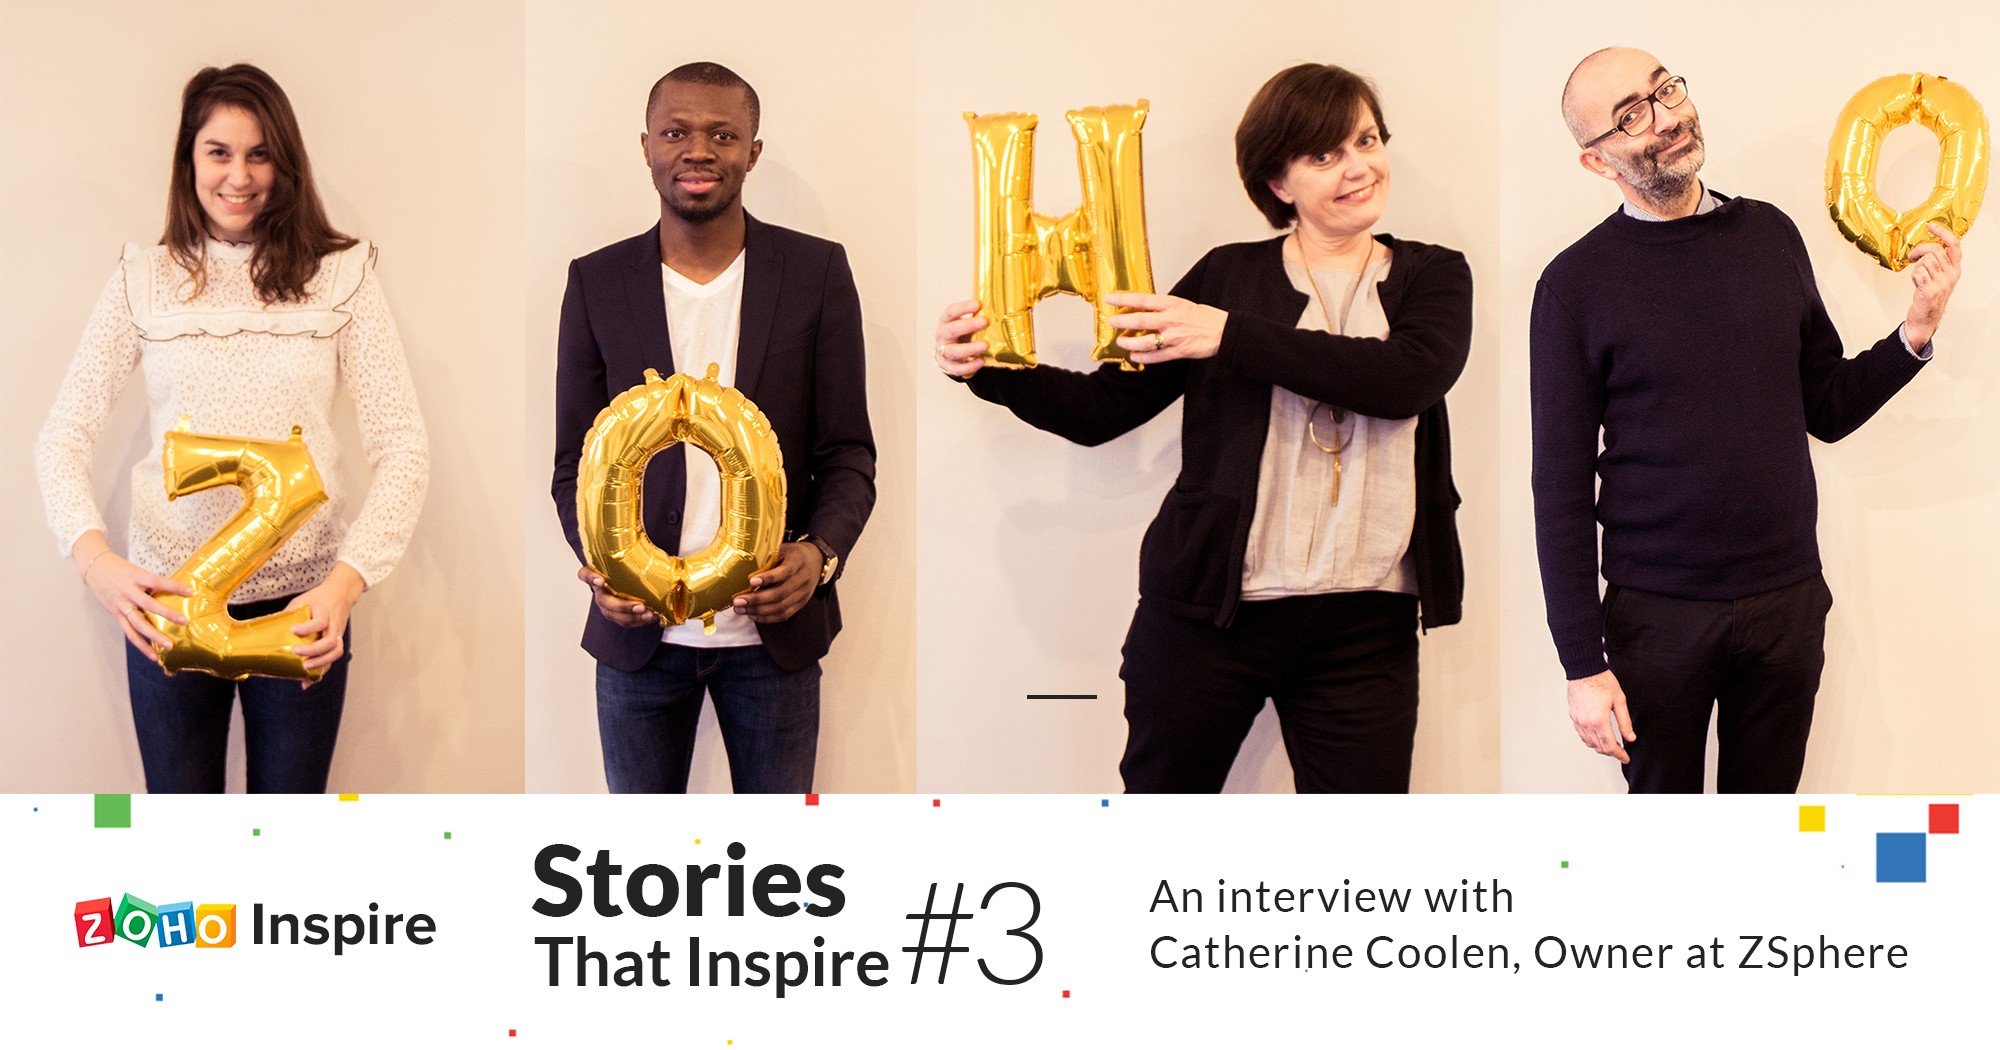 Stories That Inspire #3: How Catherine's passion is reinventing CRM consulting in France